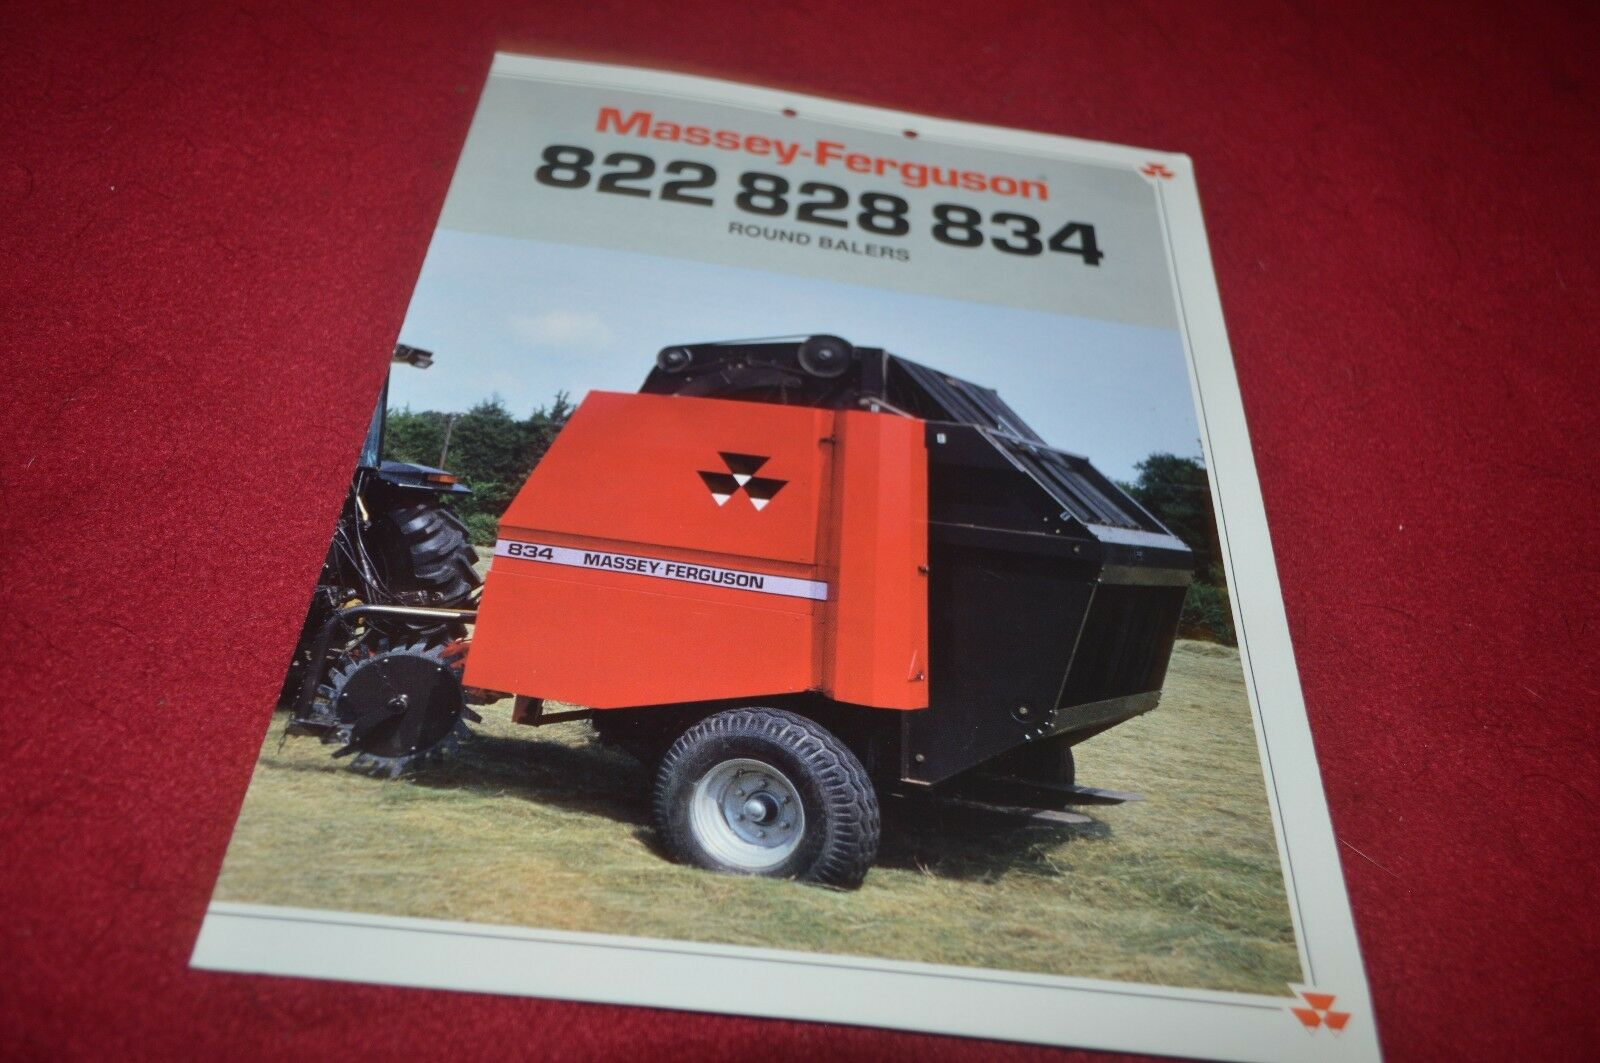 Massey Ferguson 822 828 834 Round Baler Dealers Brochure YABE10 1 of 1Only  1 available ...